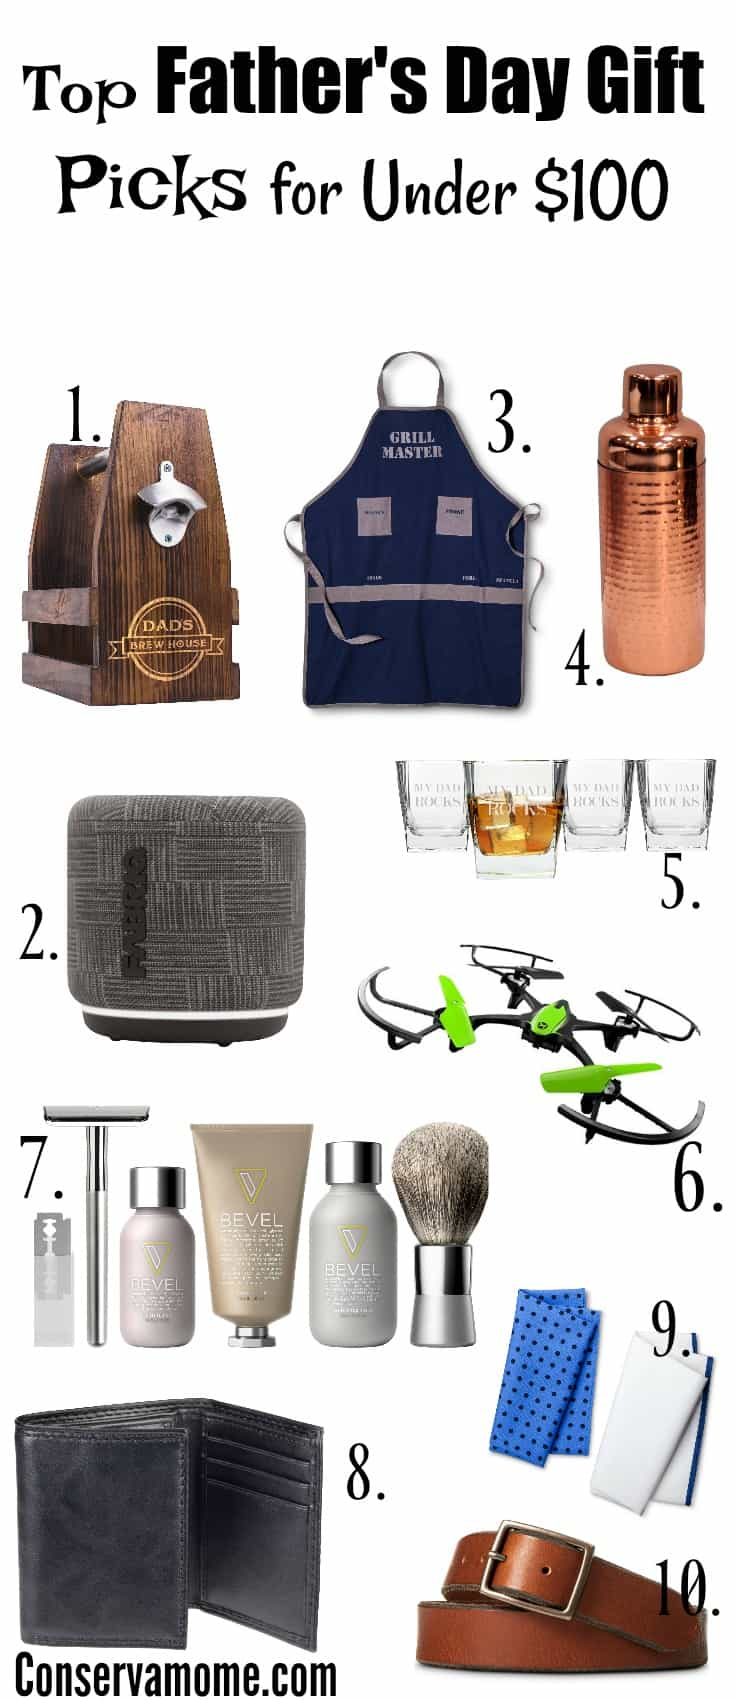 Conservamom 39 s top father 39 s day gift picks for under 100 for Best gifts for fathers day